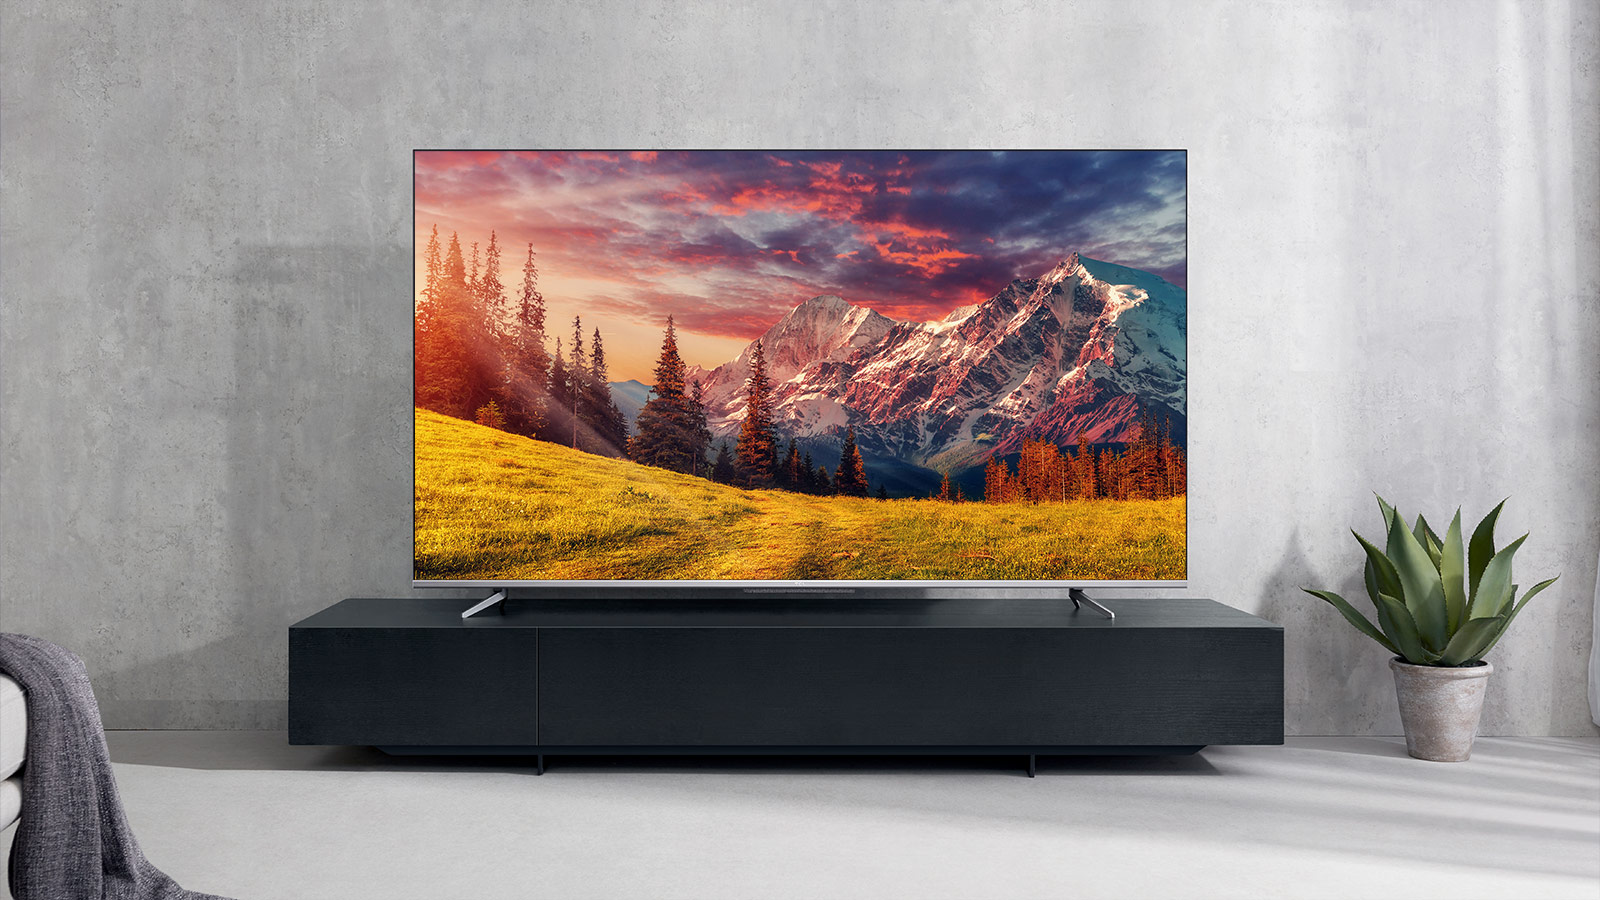 TCL 55P17 Android Smart TV